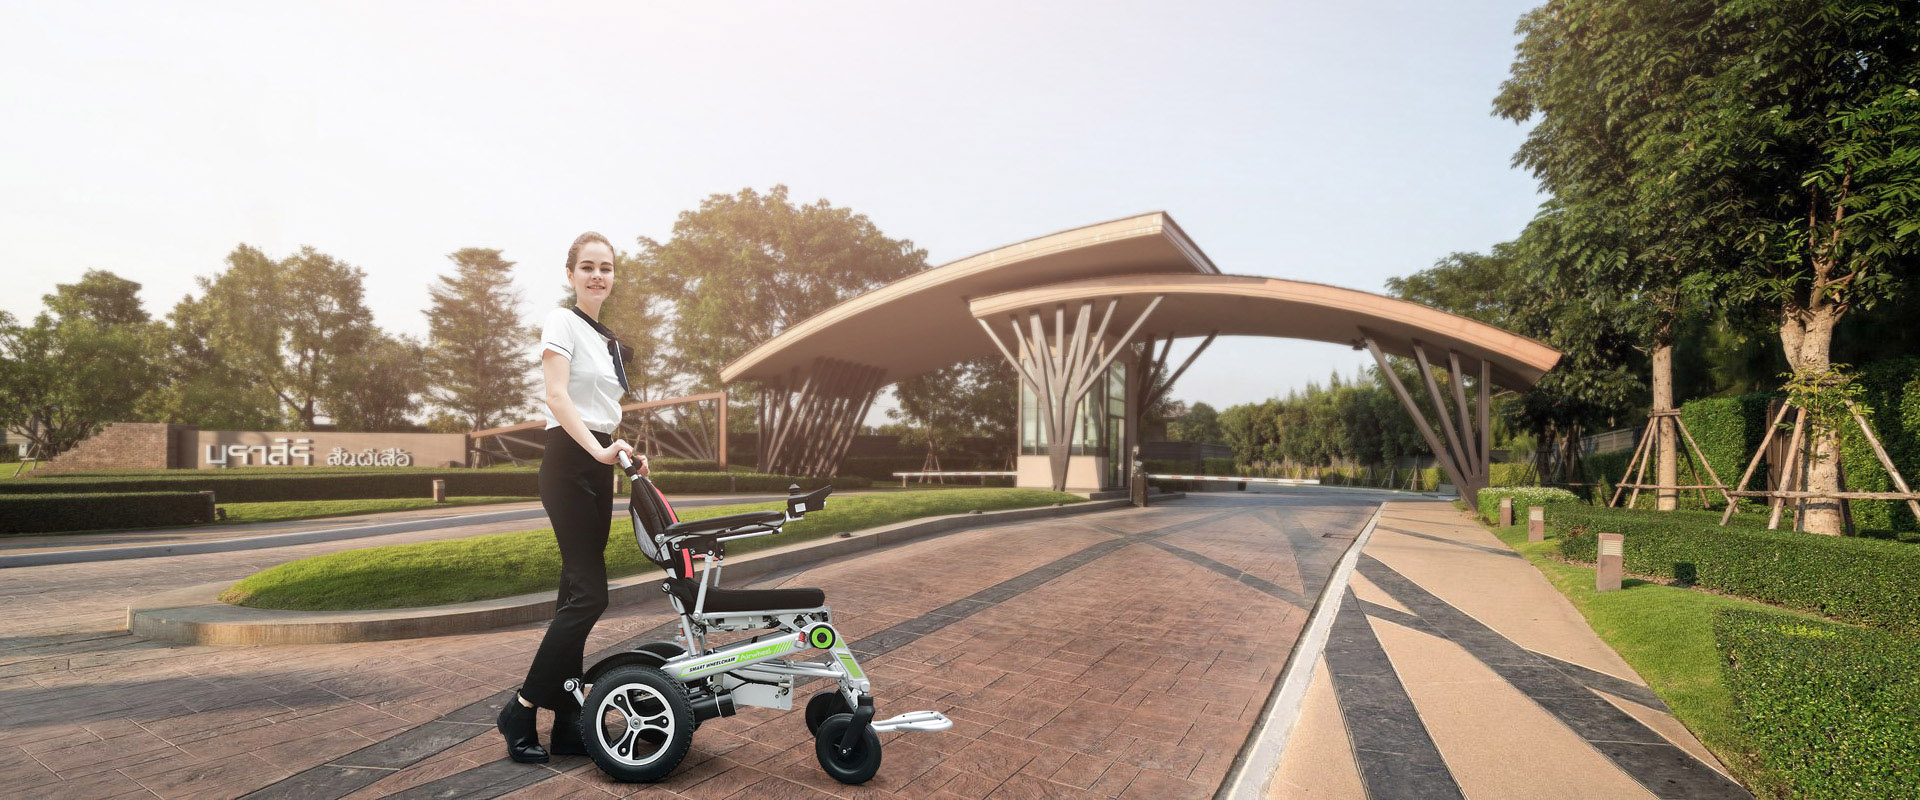 Airwheel H3T folding wheelchair